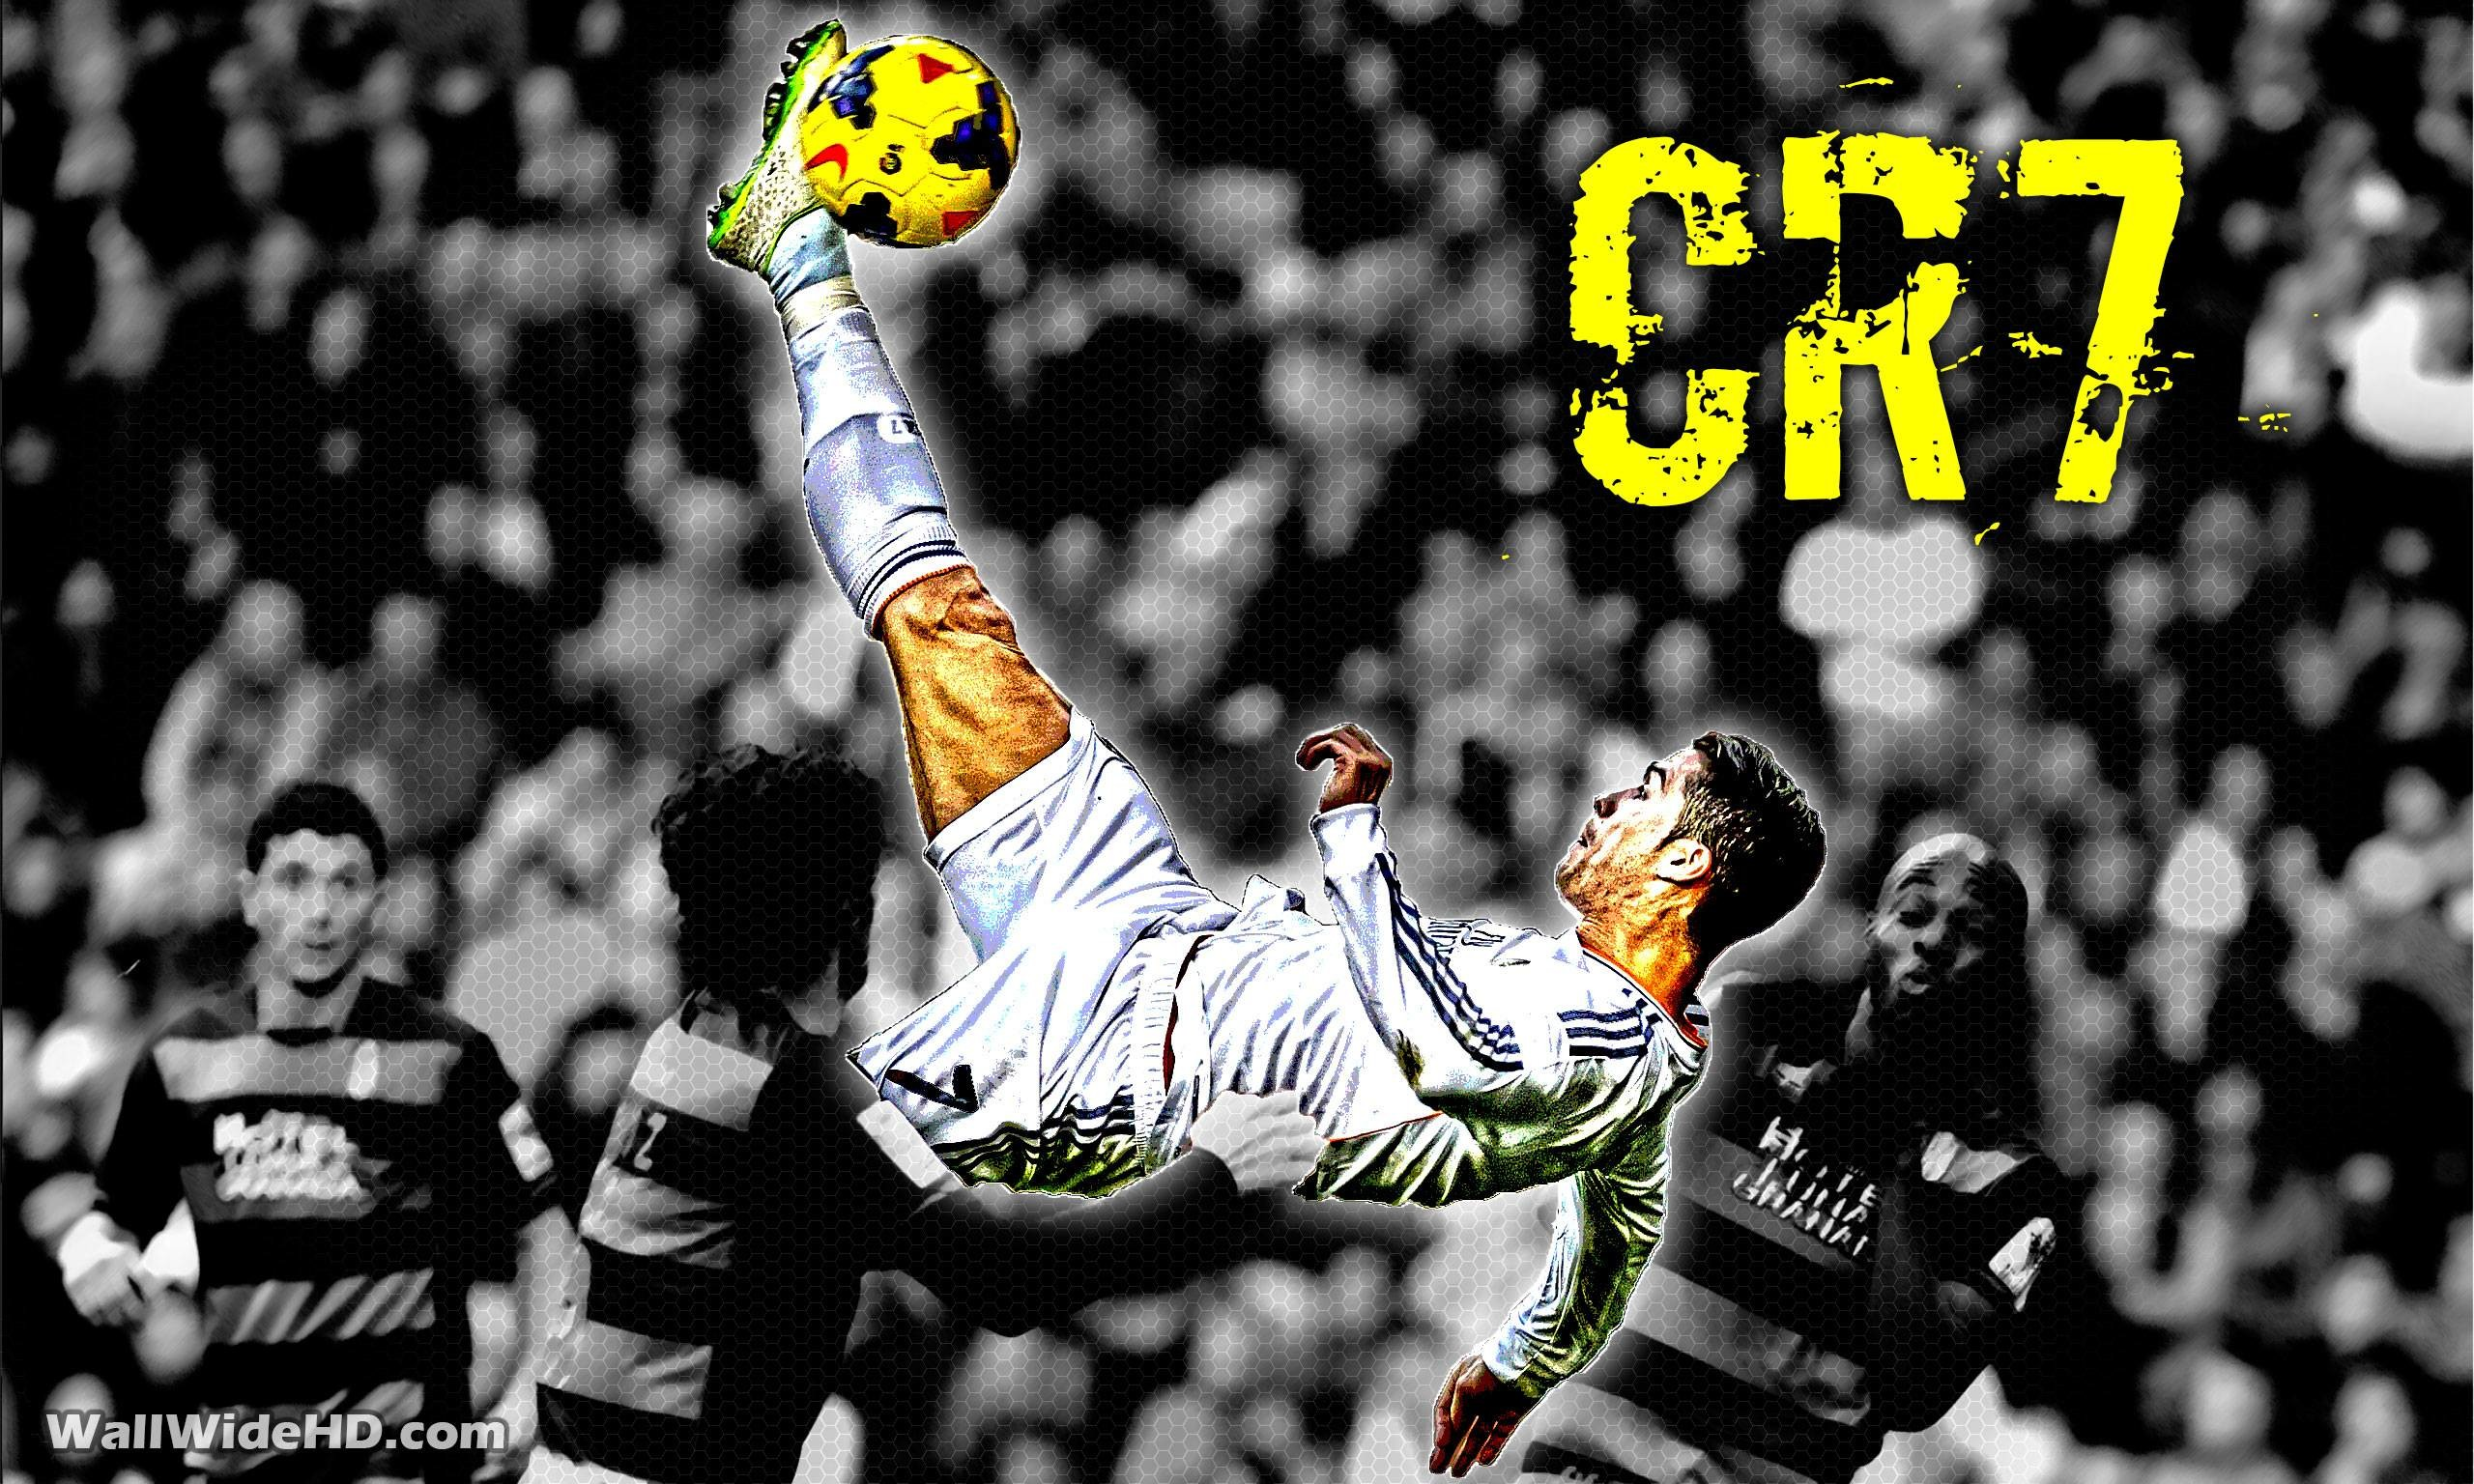 2560x1536 CR7 Real Madrid Overhead Kick Wallpaper Wide or HD | Artistic .